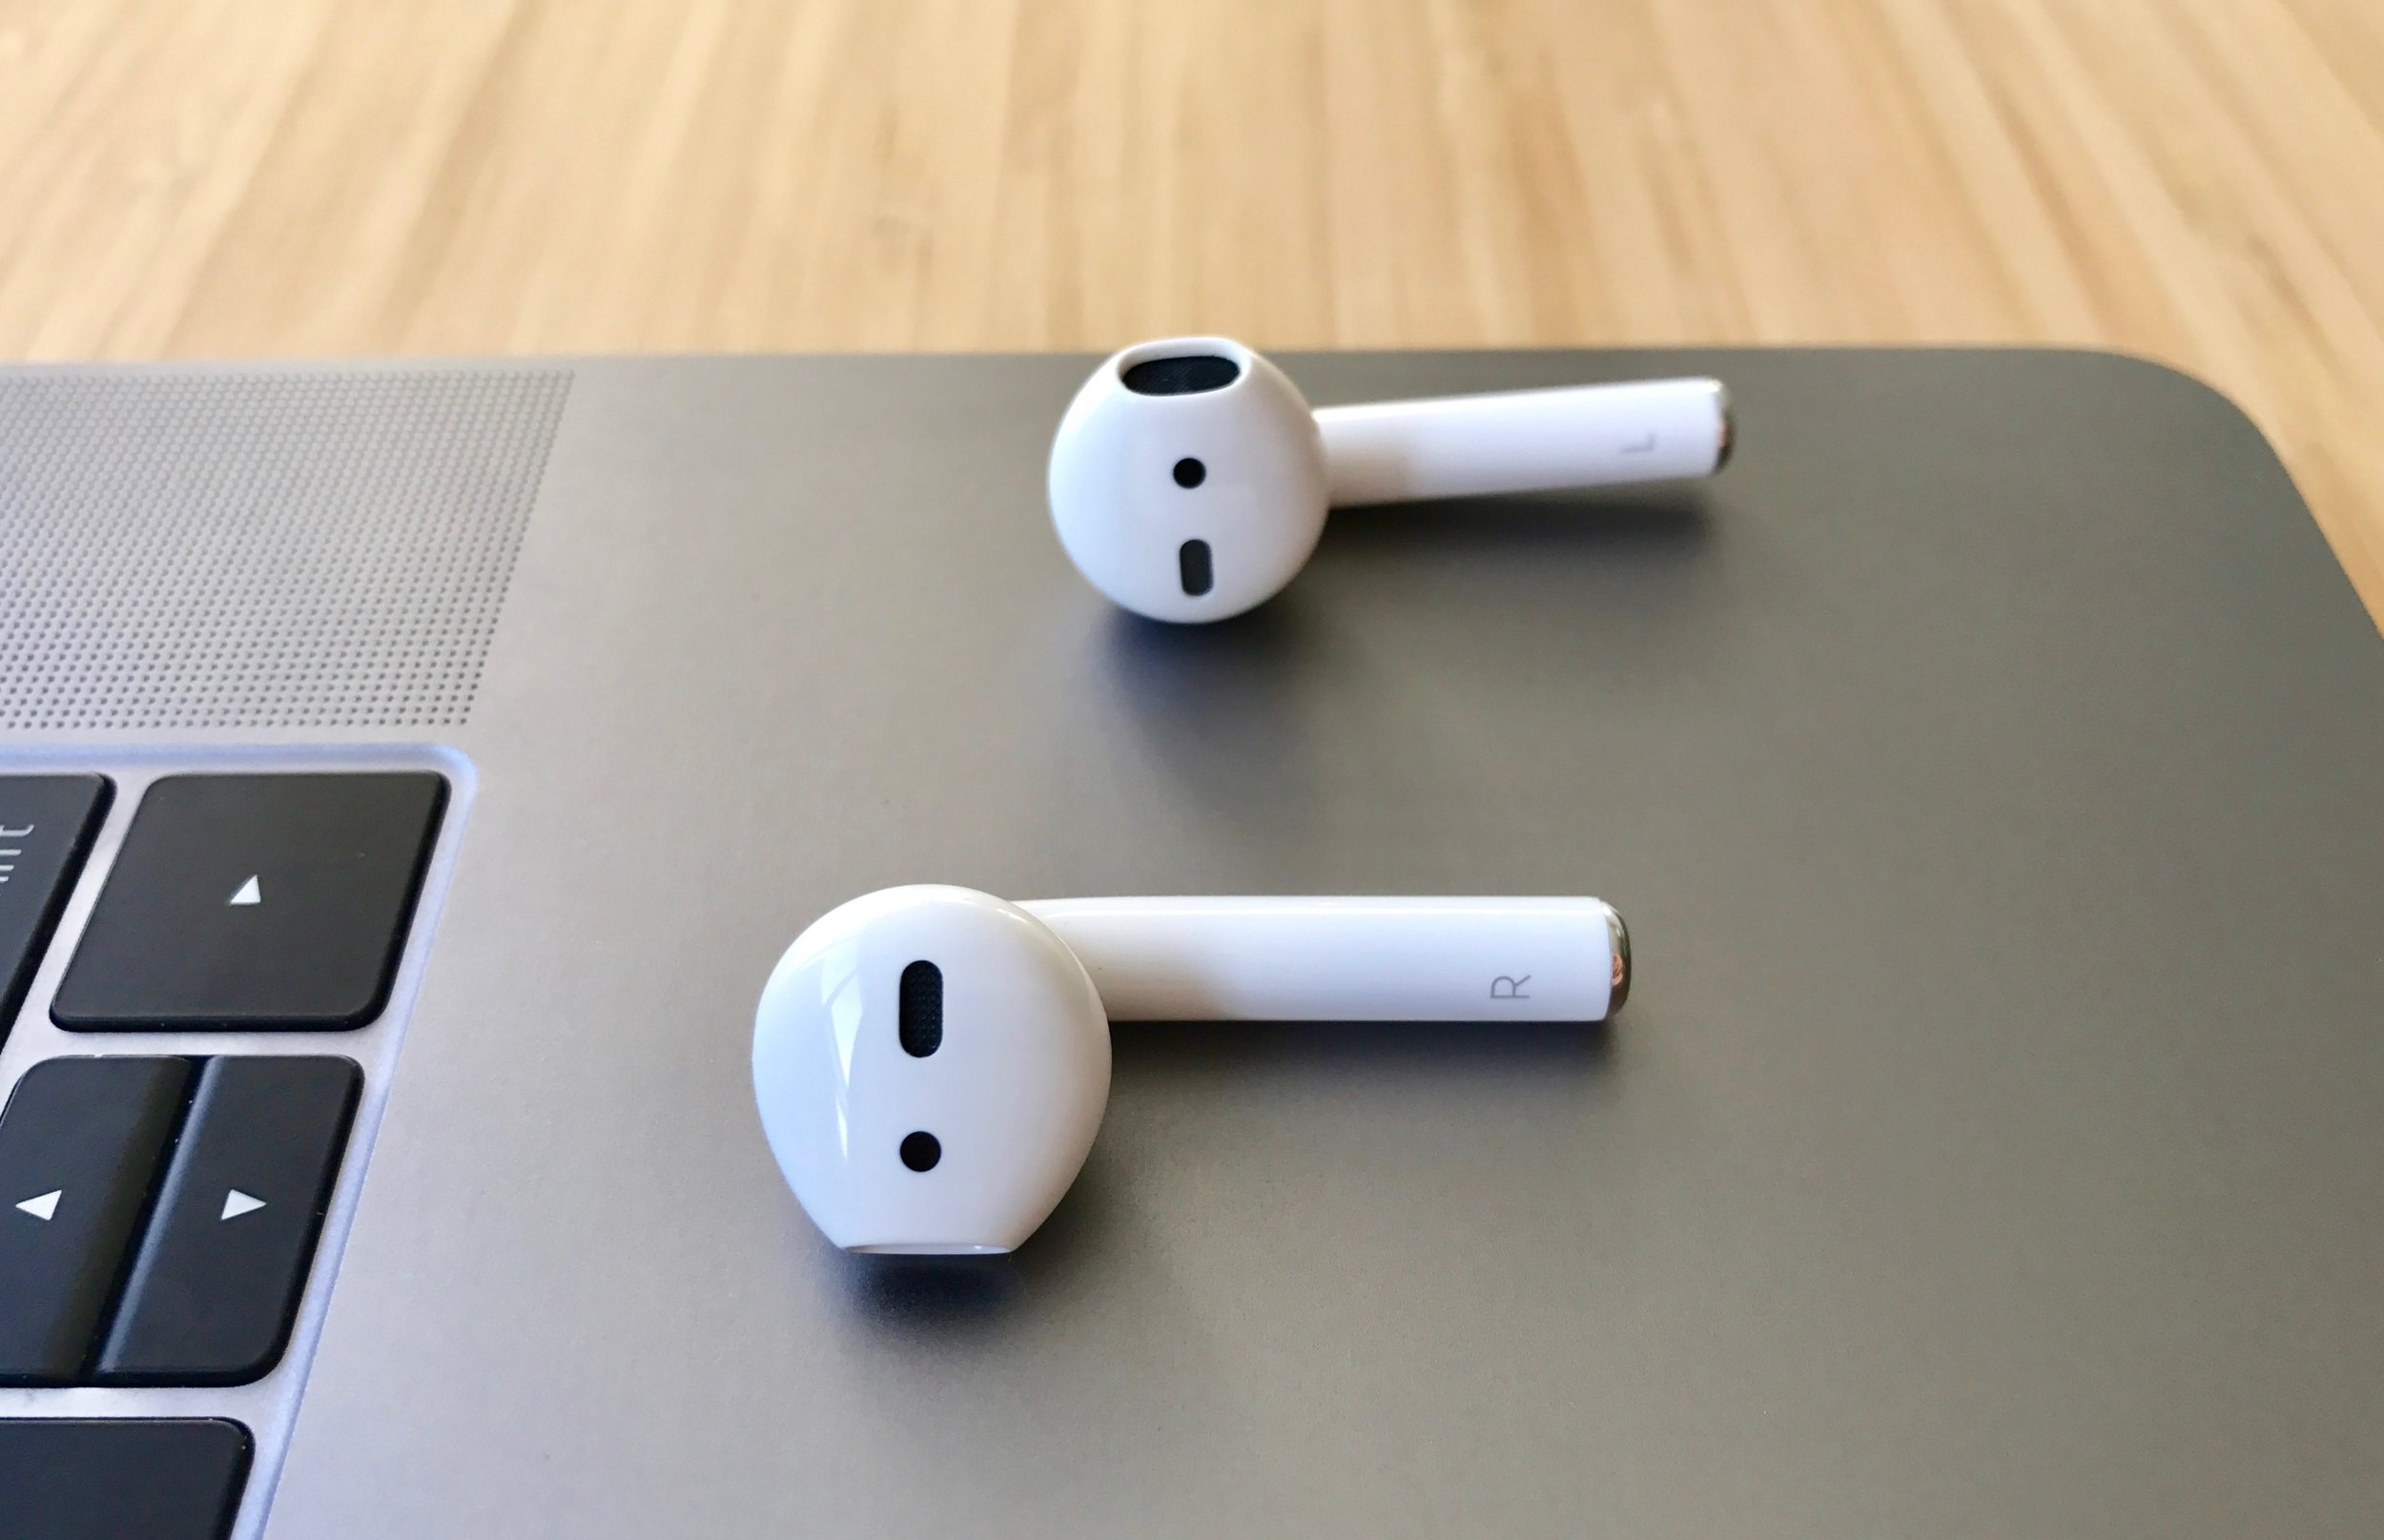 Apple AirPods - Smart, compact, wireless companions to replace standard Apple earbuds